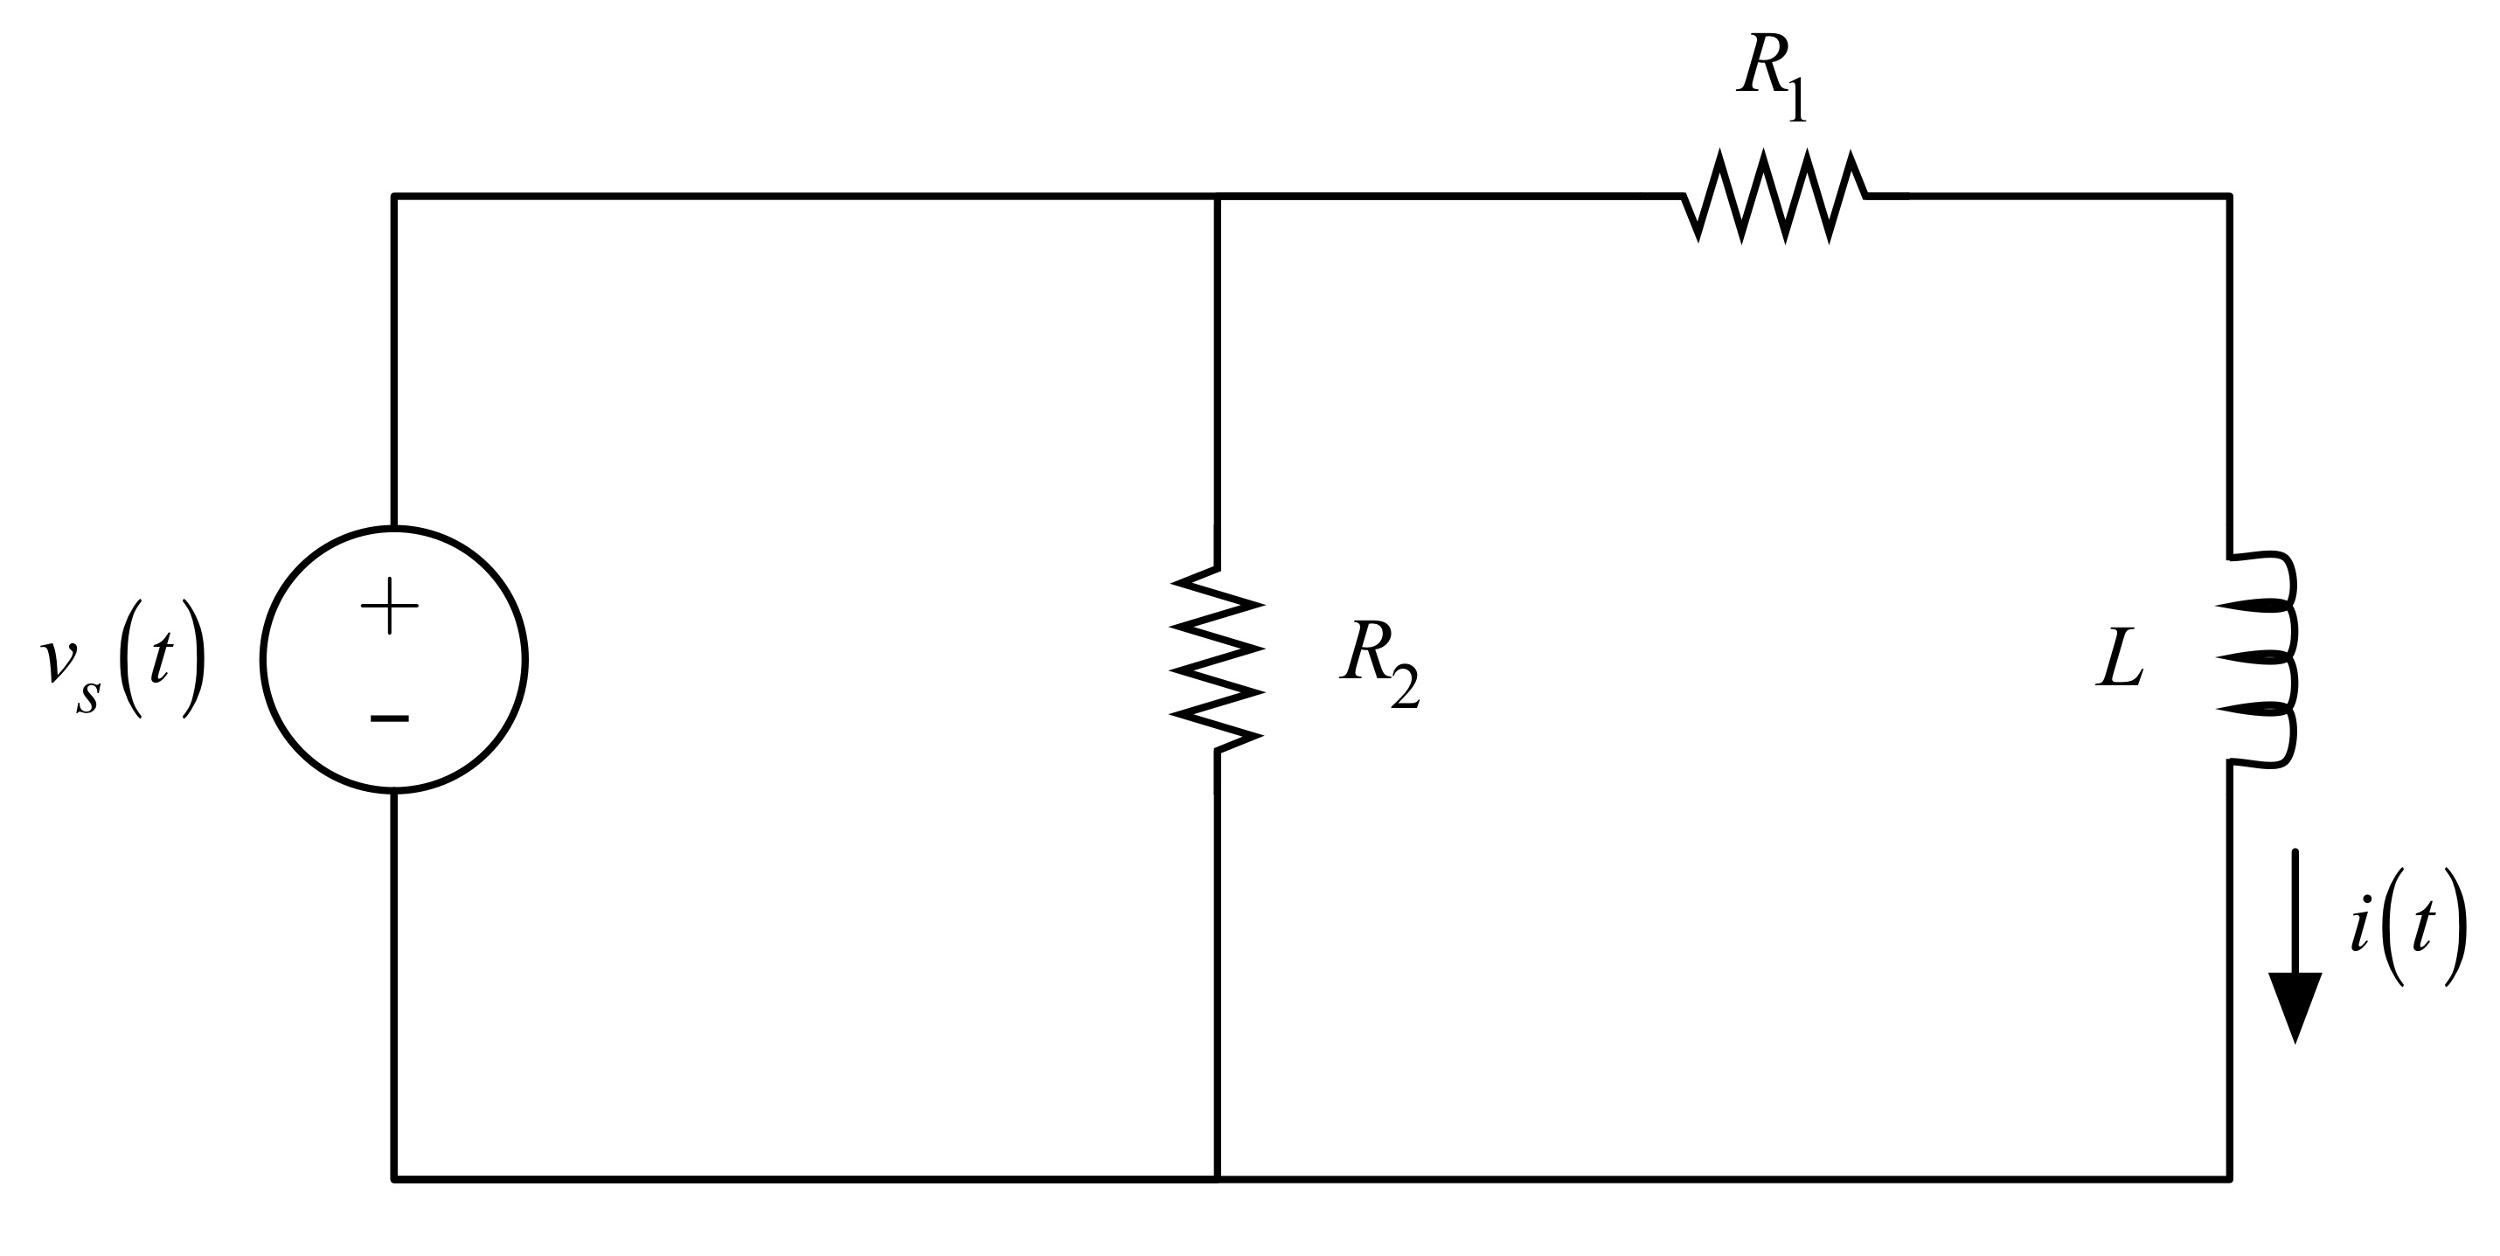 Find the current i(t) when the voltage source volt